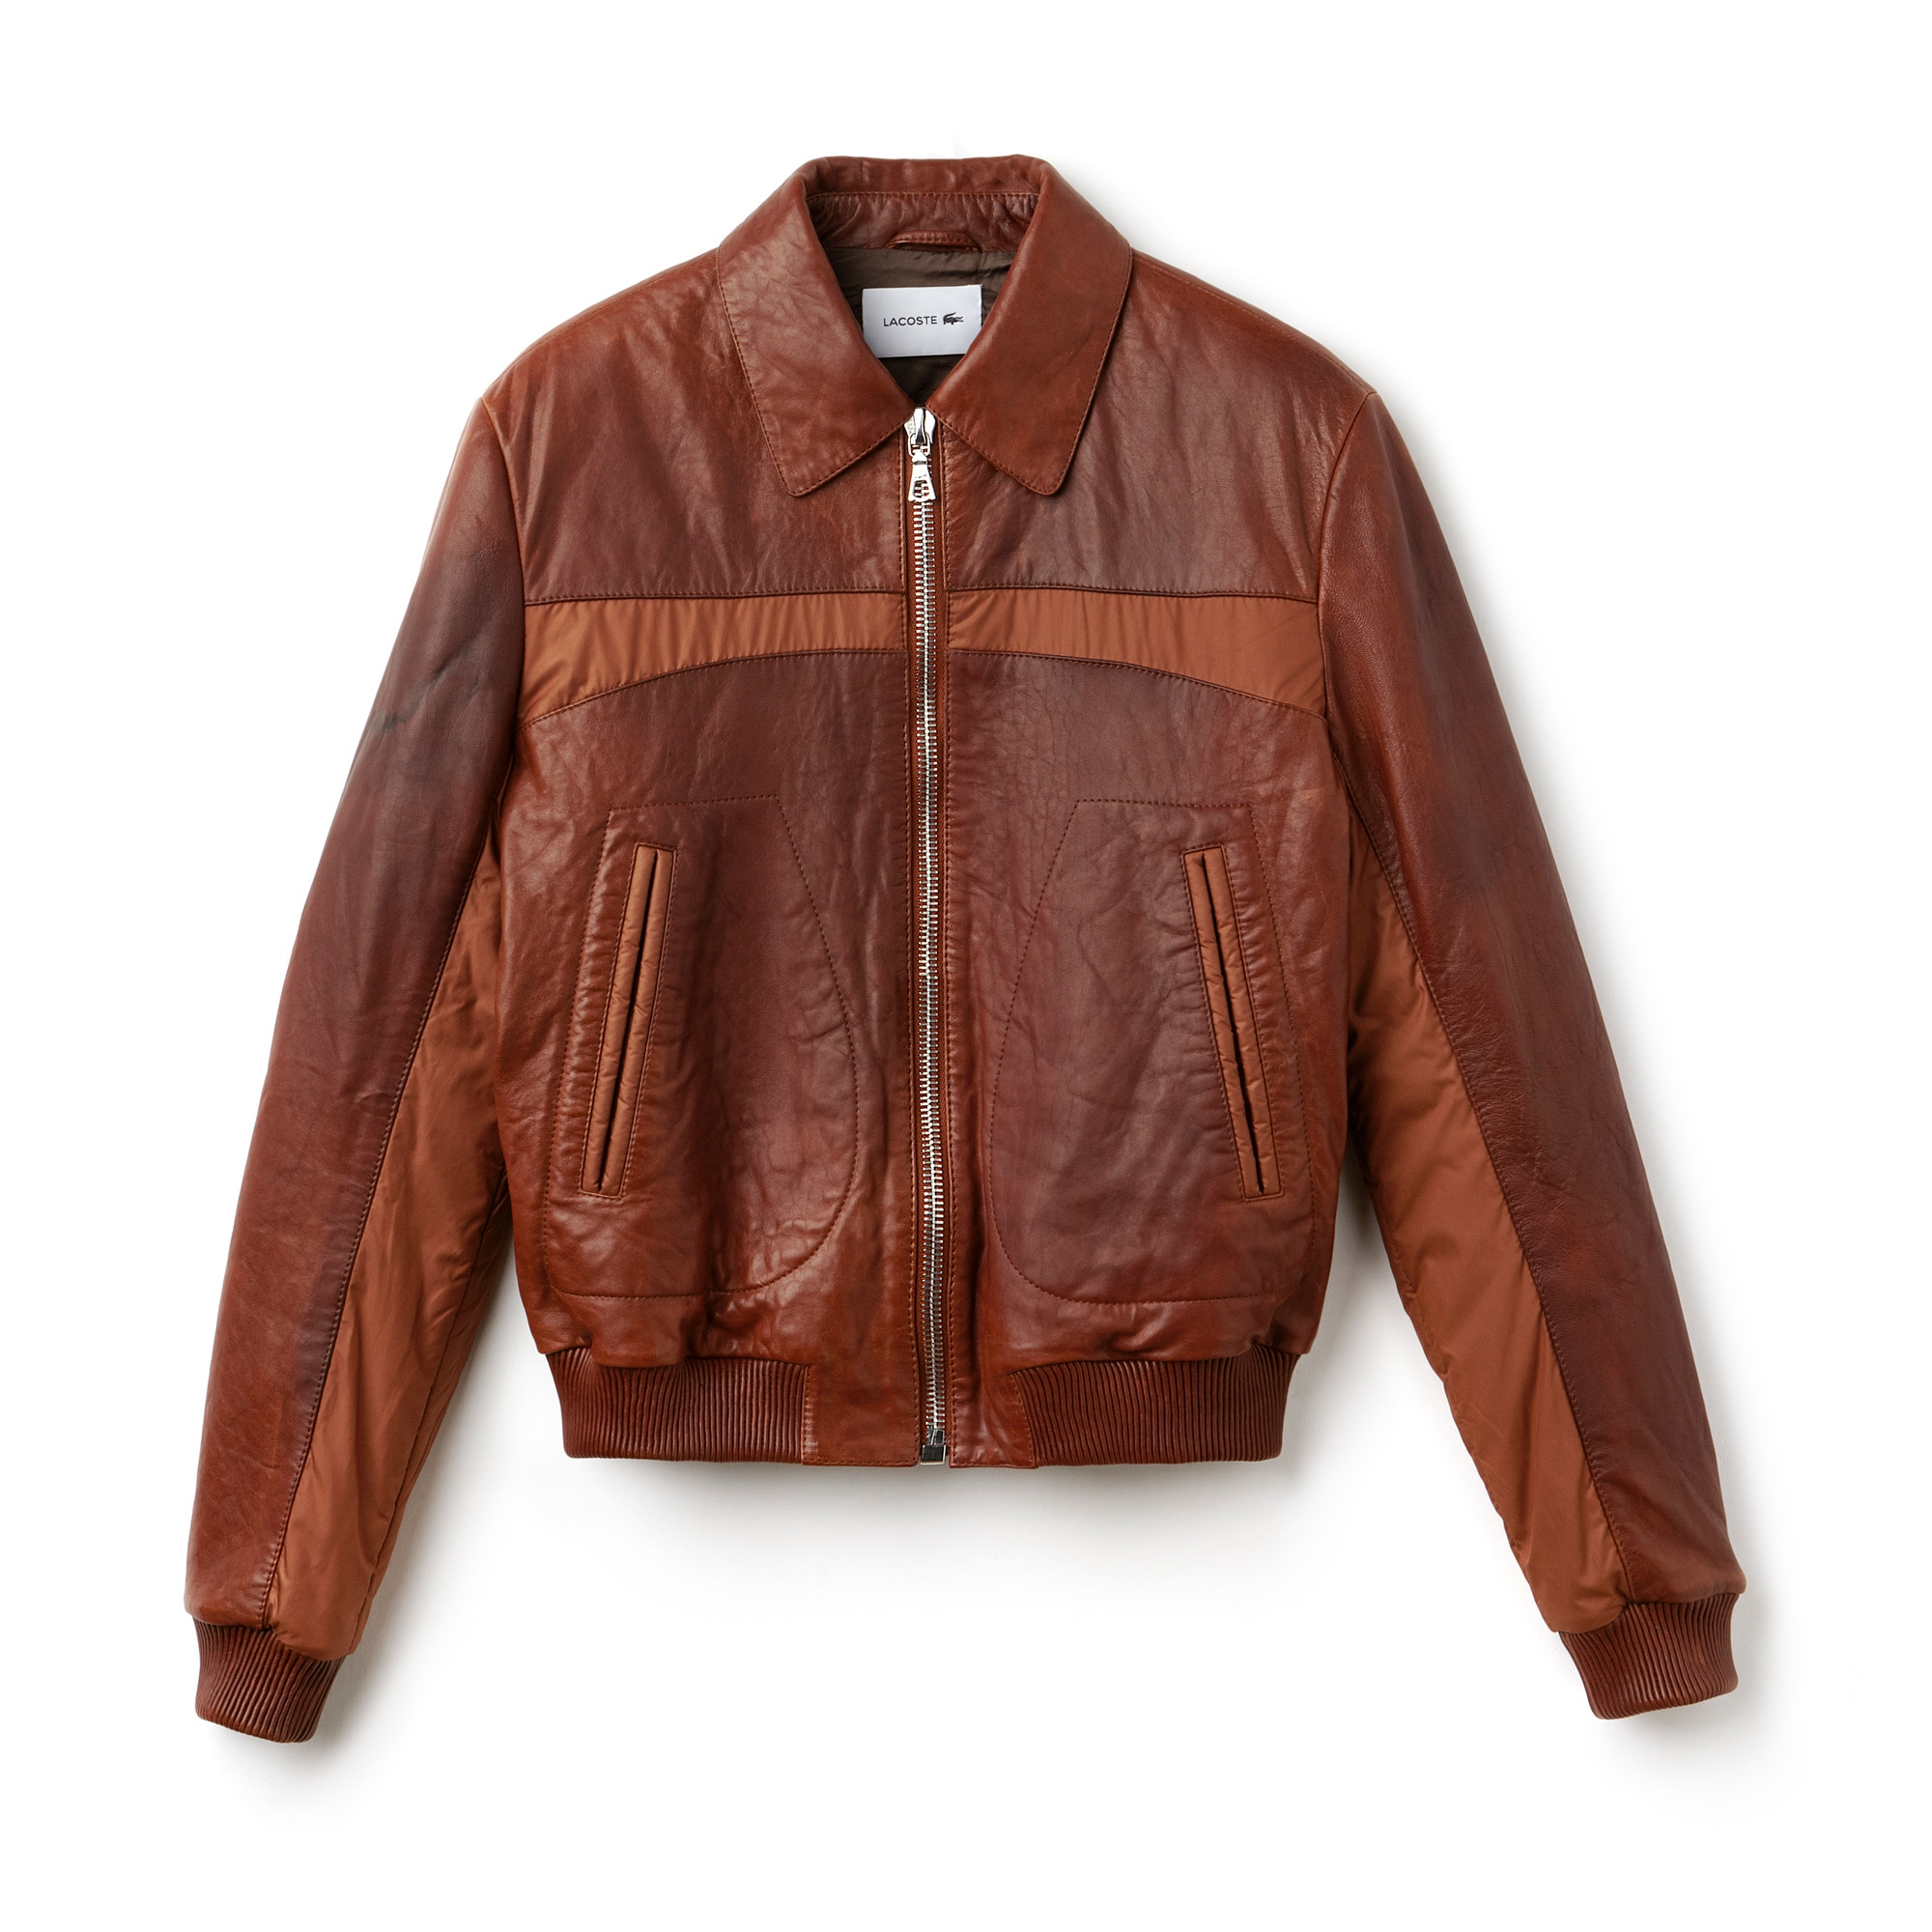 Lacoste leather jacket